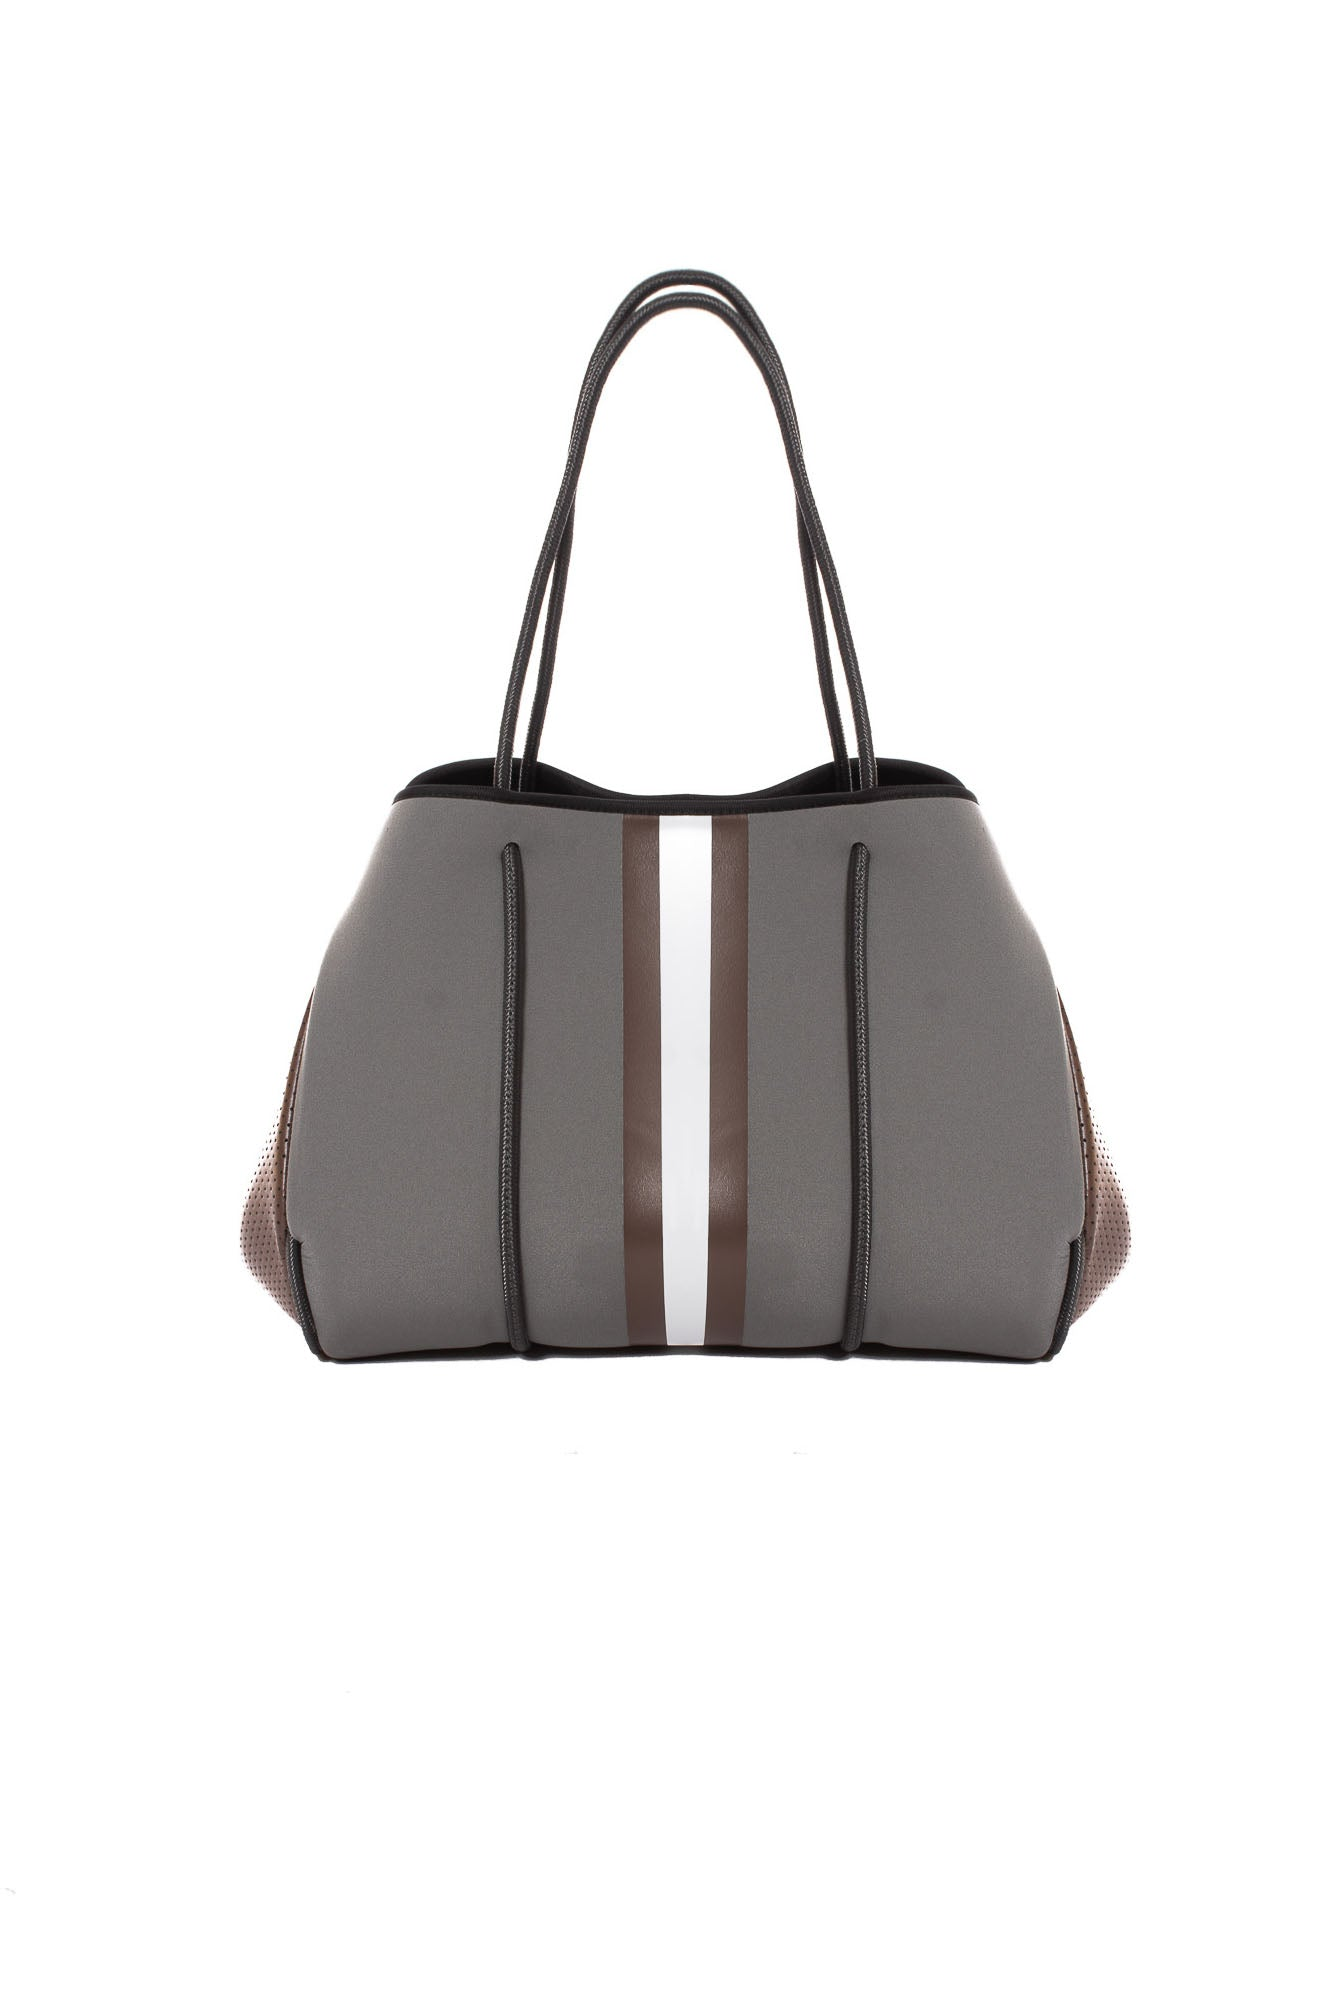 Haute Shore - Cocoa Neoprene Tote Bag w/Zipper Wristlet Inside (Greyson, Grey w/Brown & White Stripe)